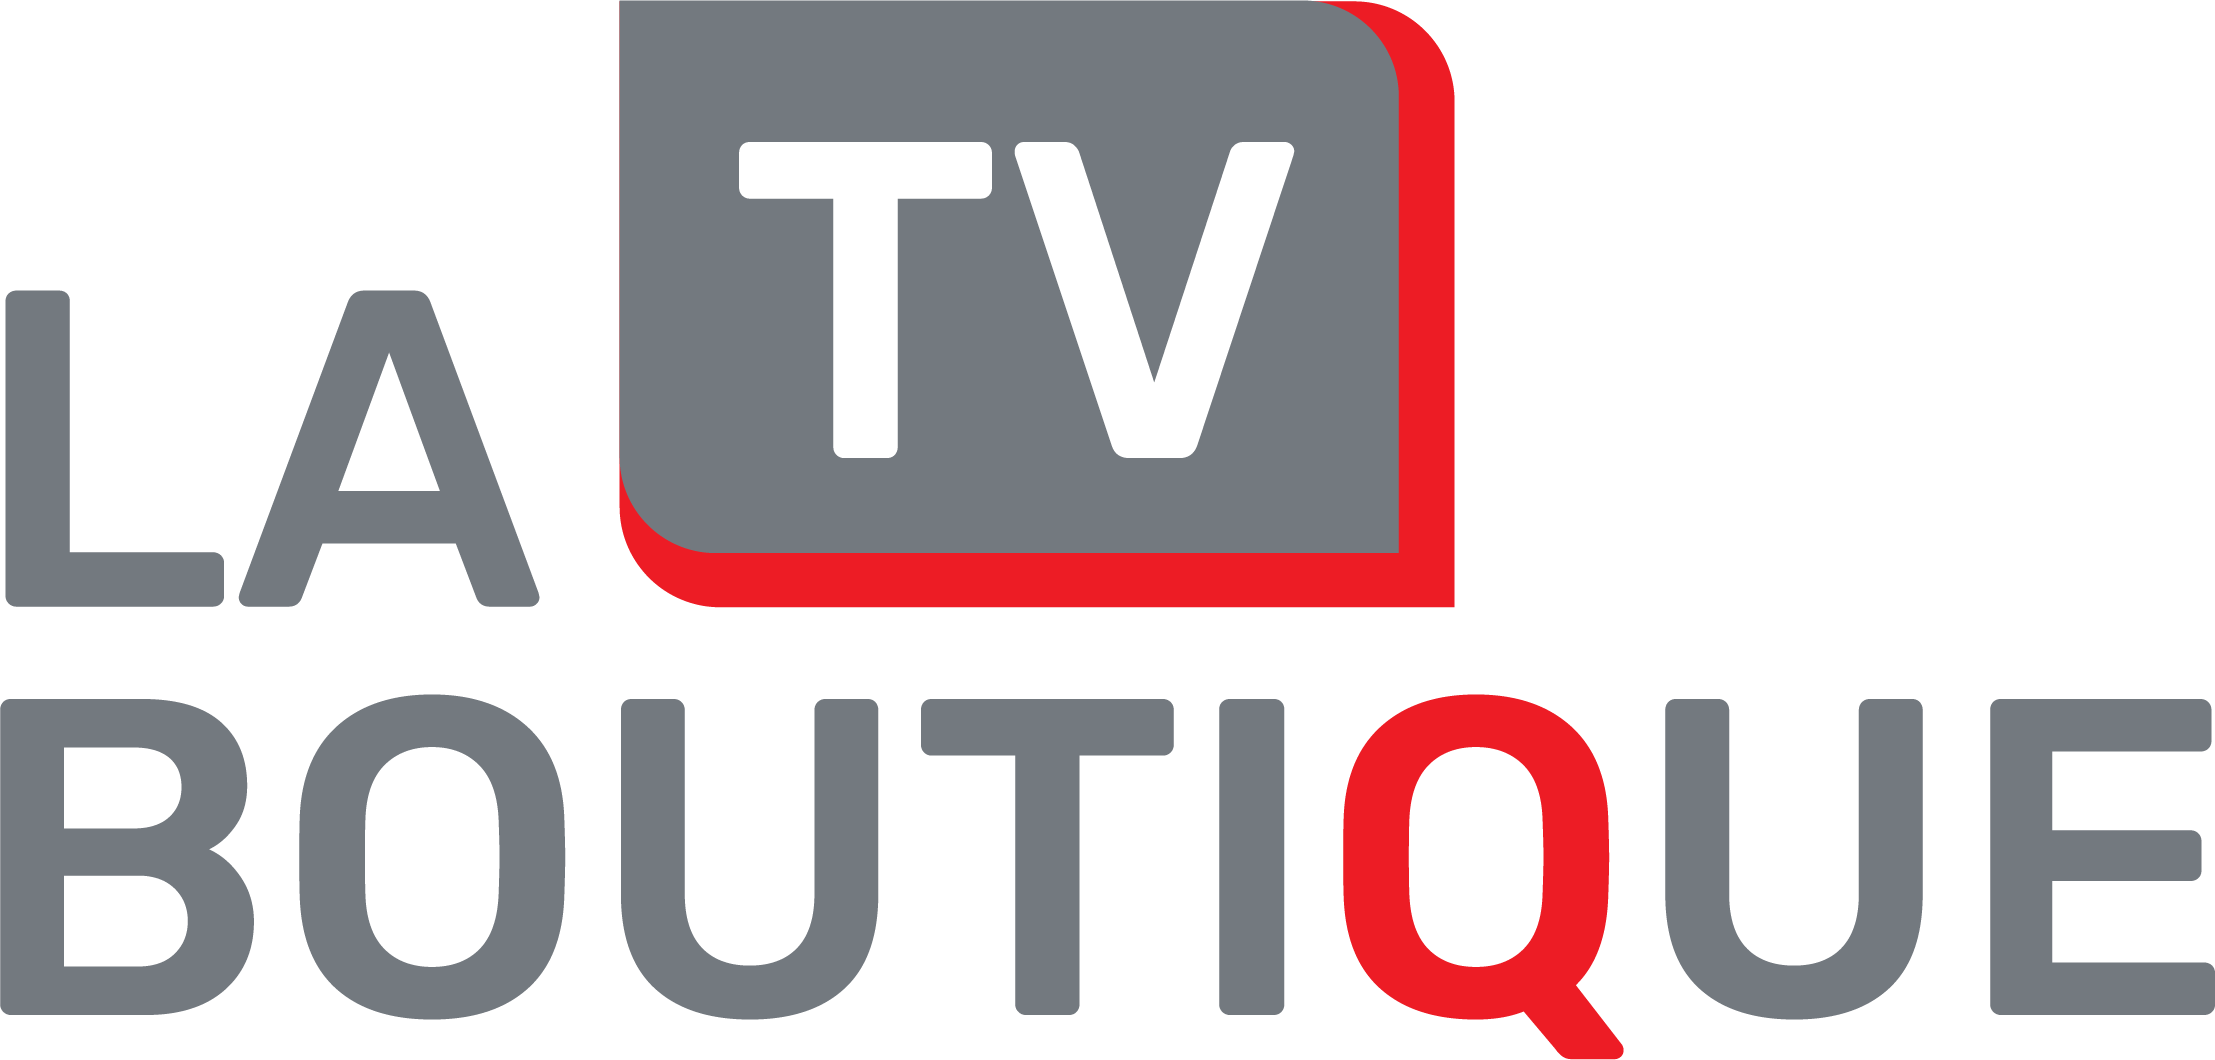 logo LA TV BOUTIQUE